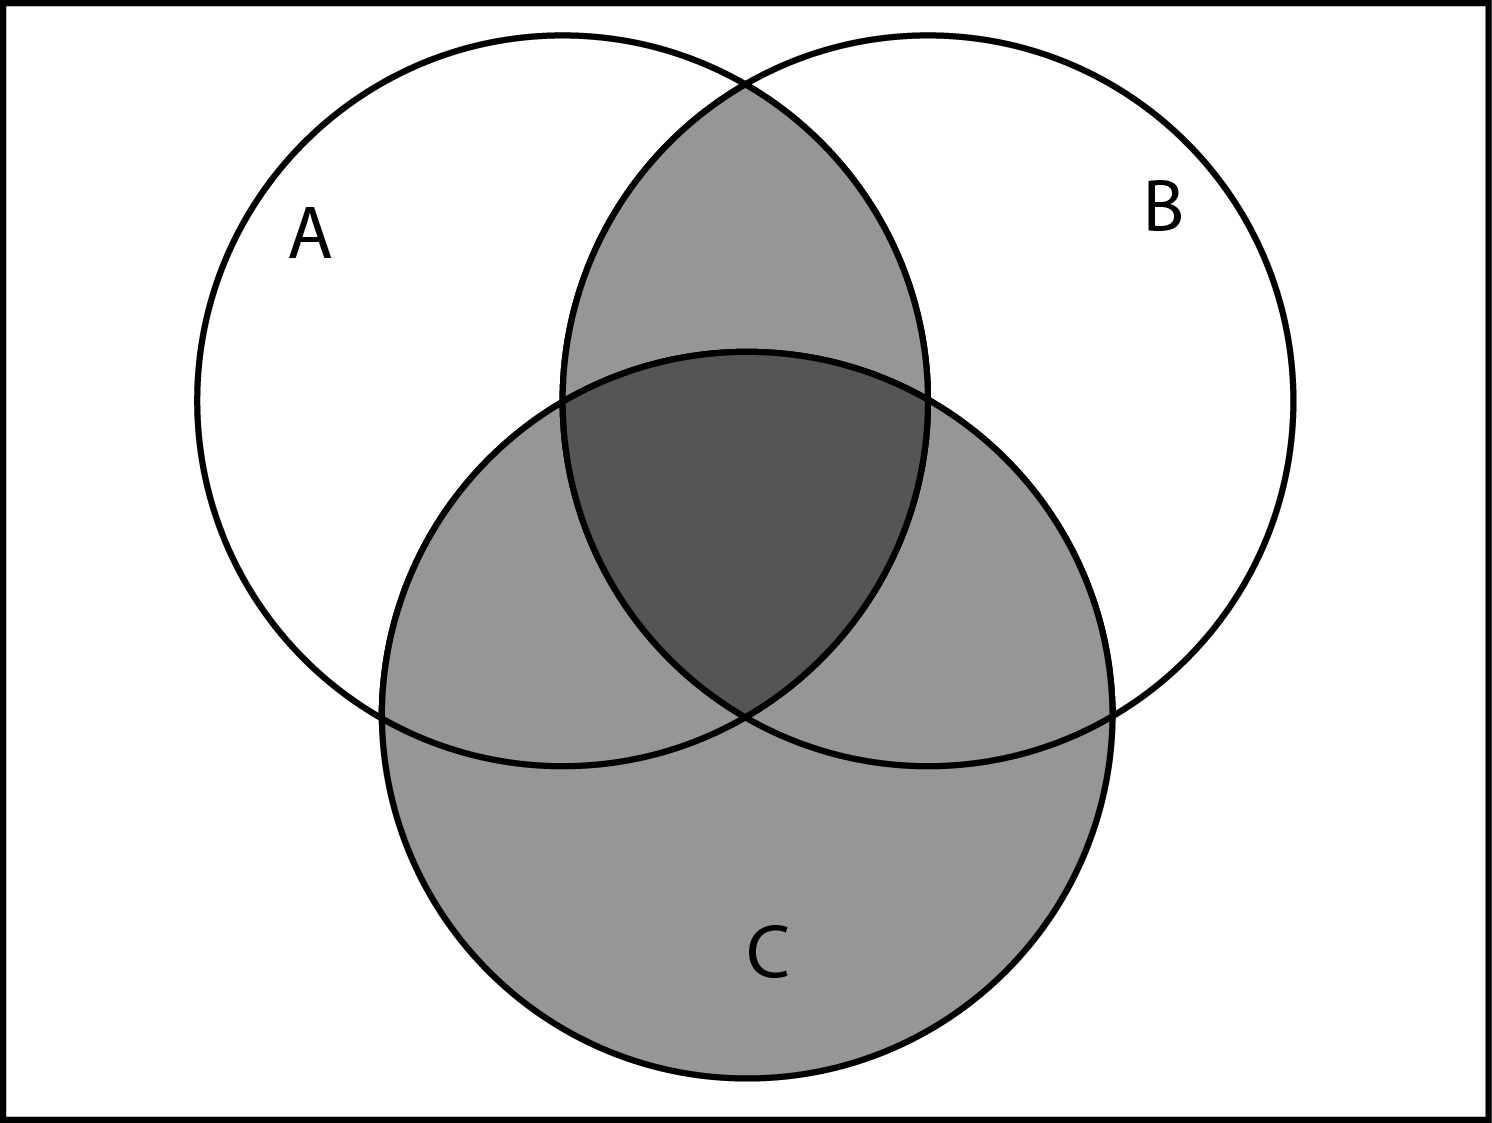 Index of /~johwd63181/MAT142/venn diagram templates